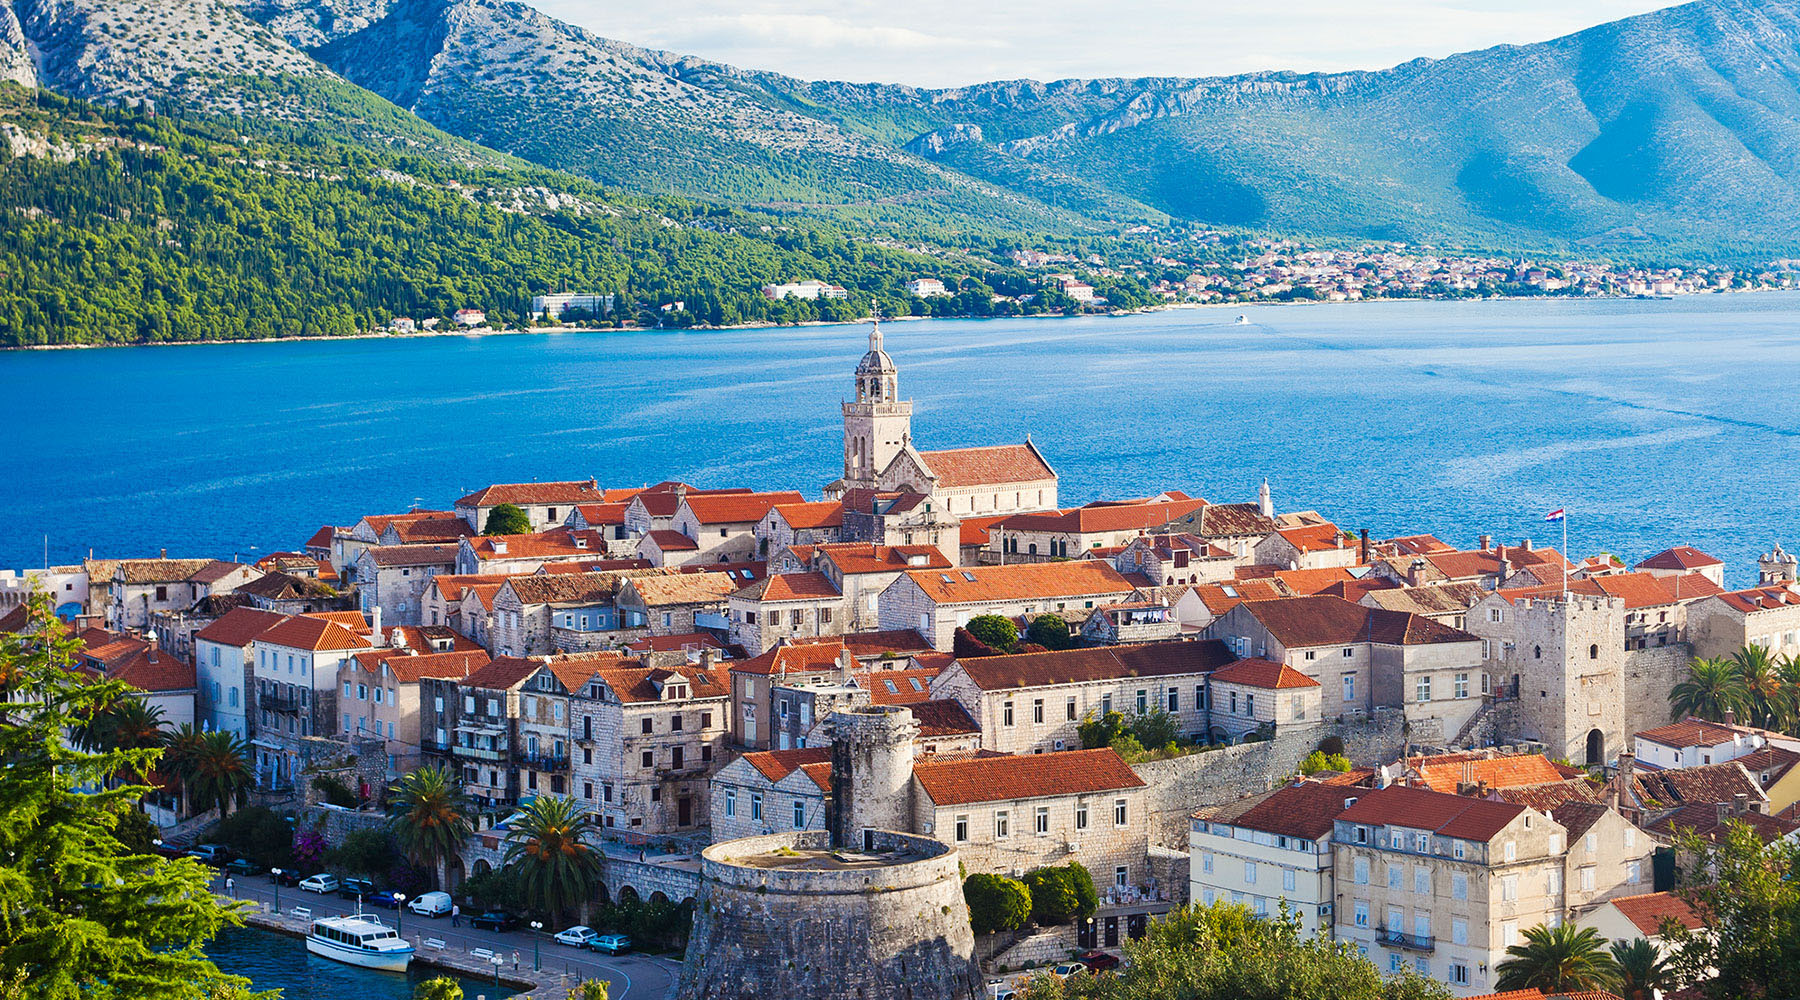 9-NIGHT ADRIATIC EXPLORATION VOYAGE